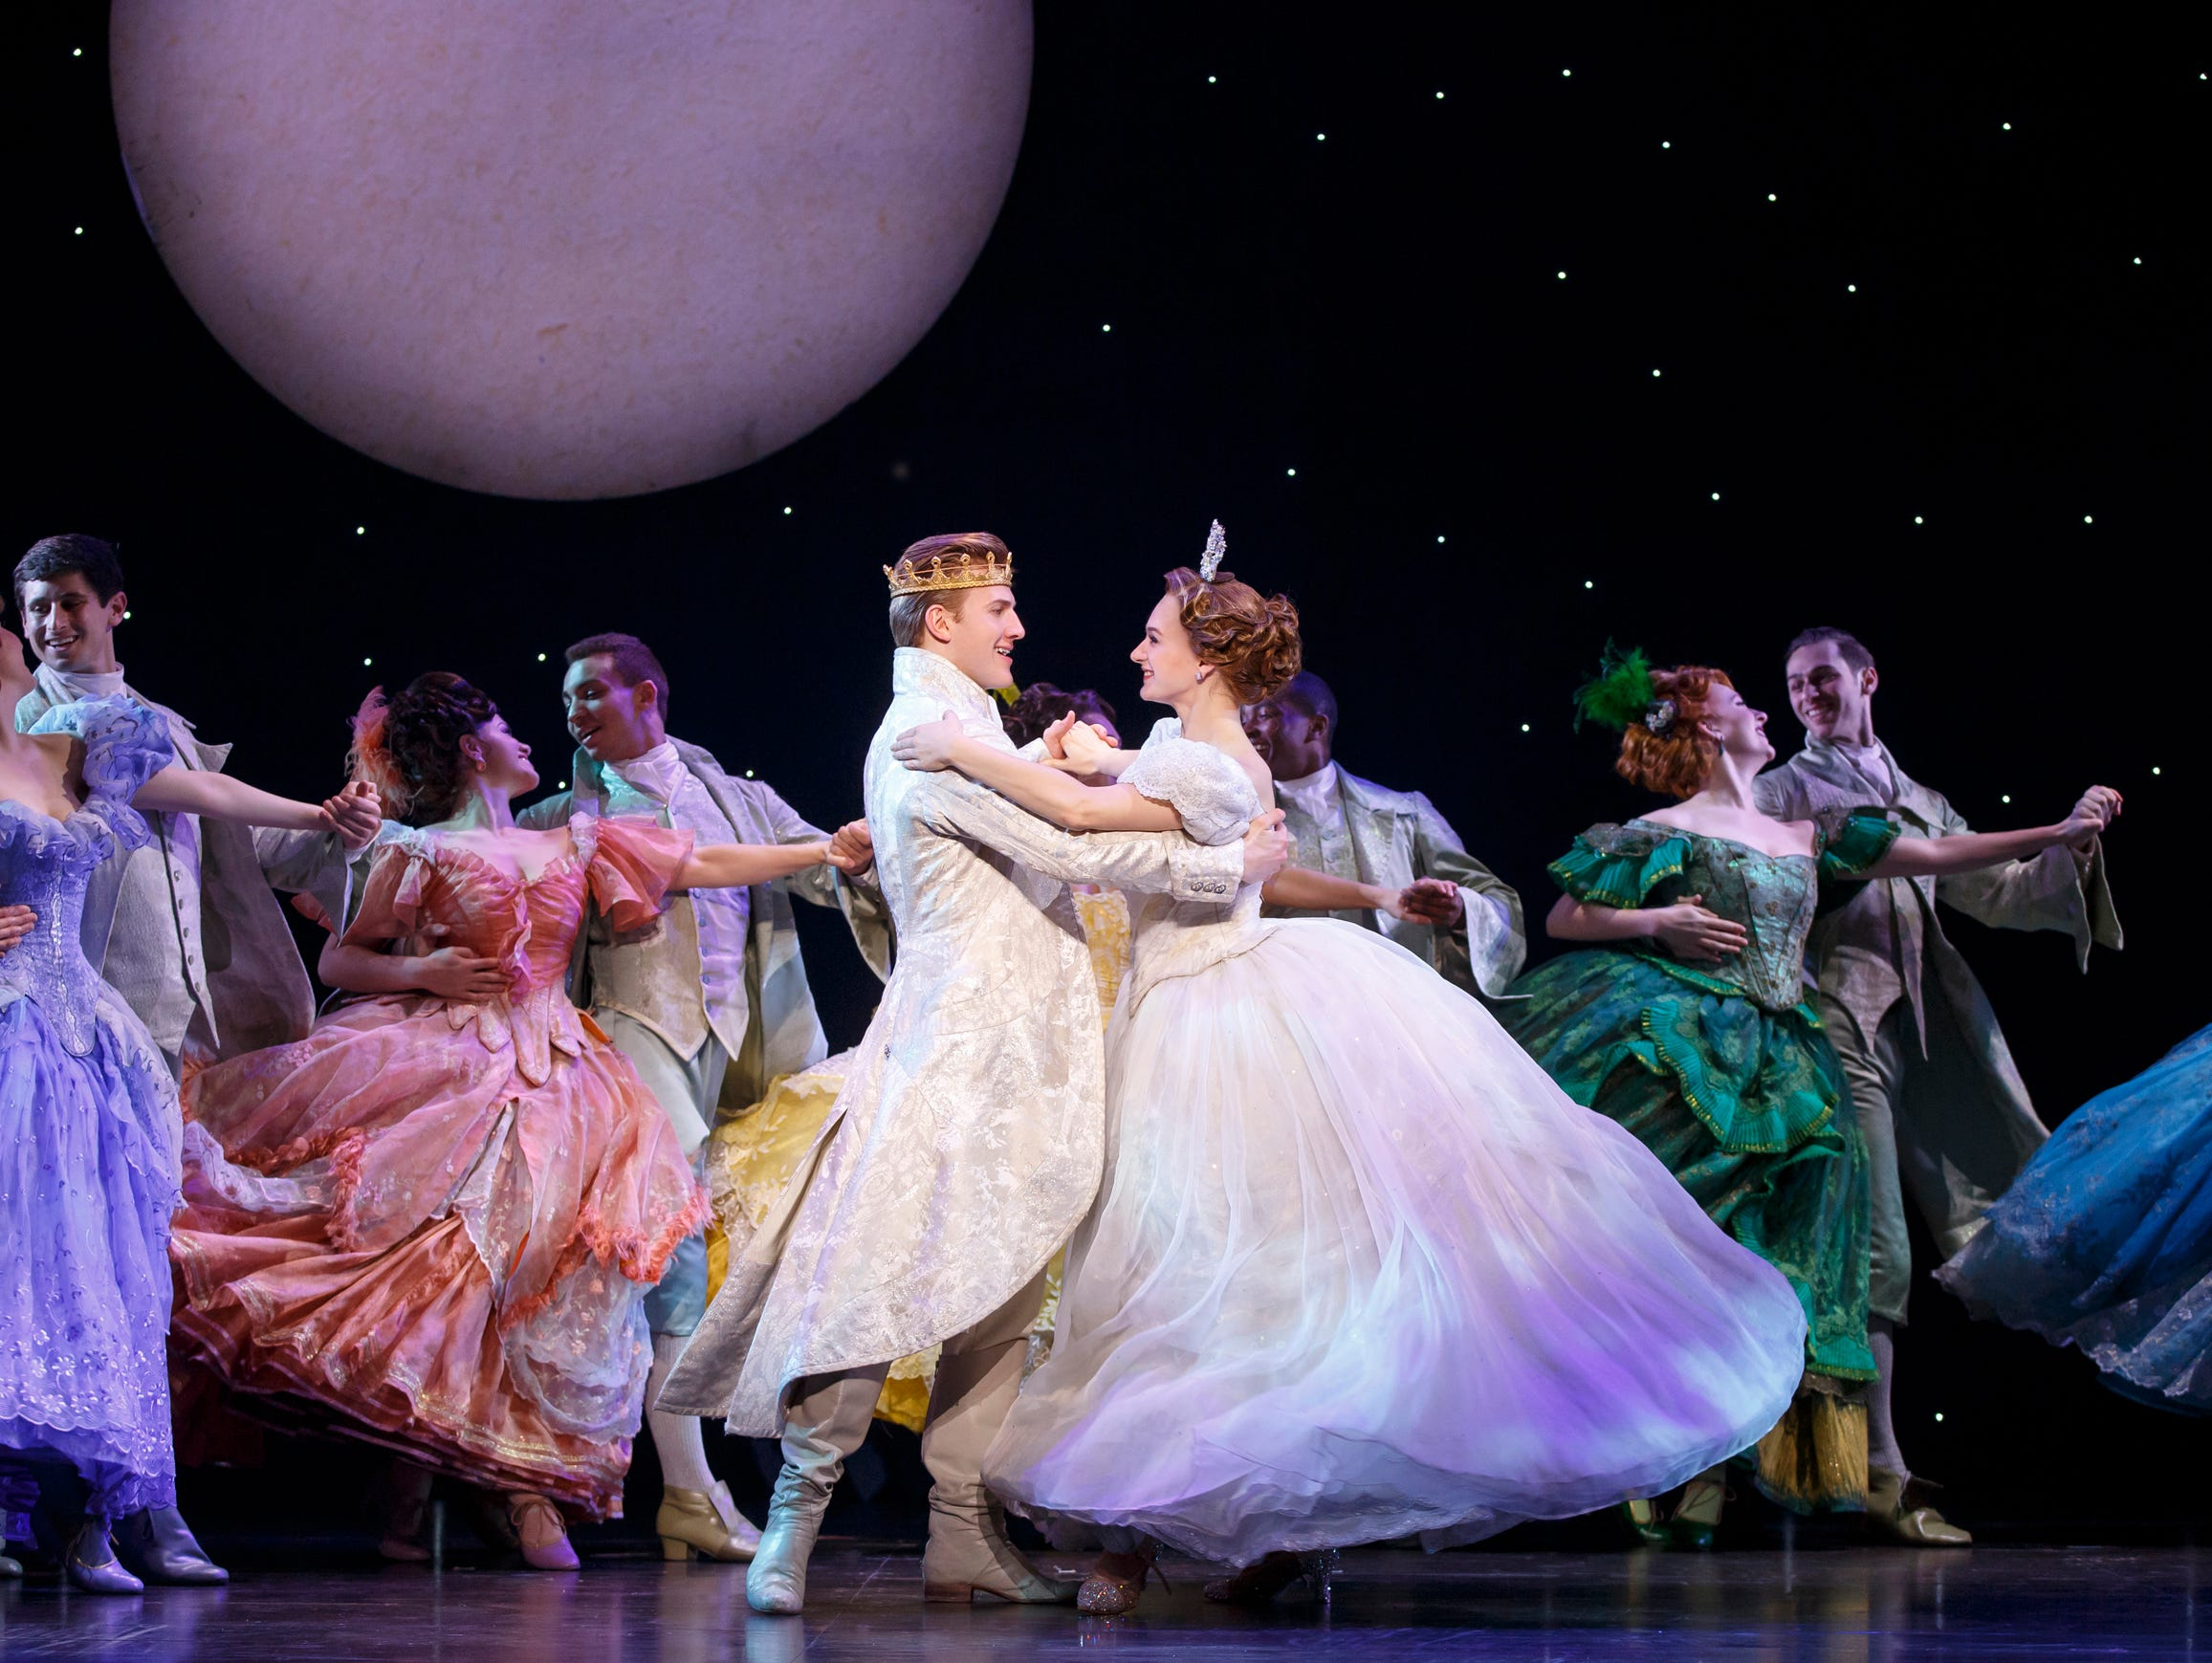 Save 15% on tickets to Rodgers + Hemmerstein's Cinderella at Miller High Life Theatre.